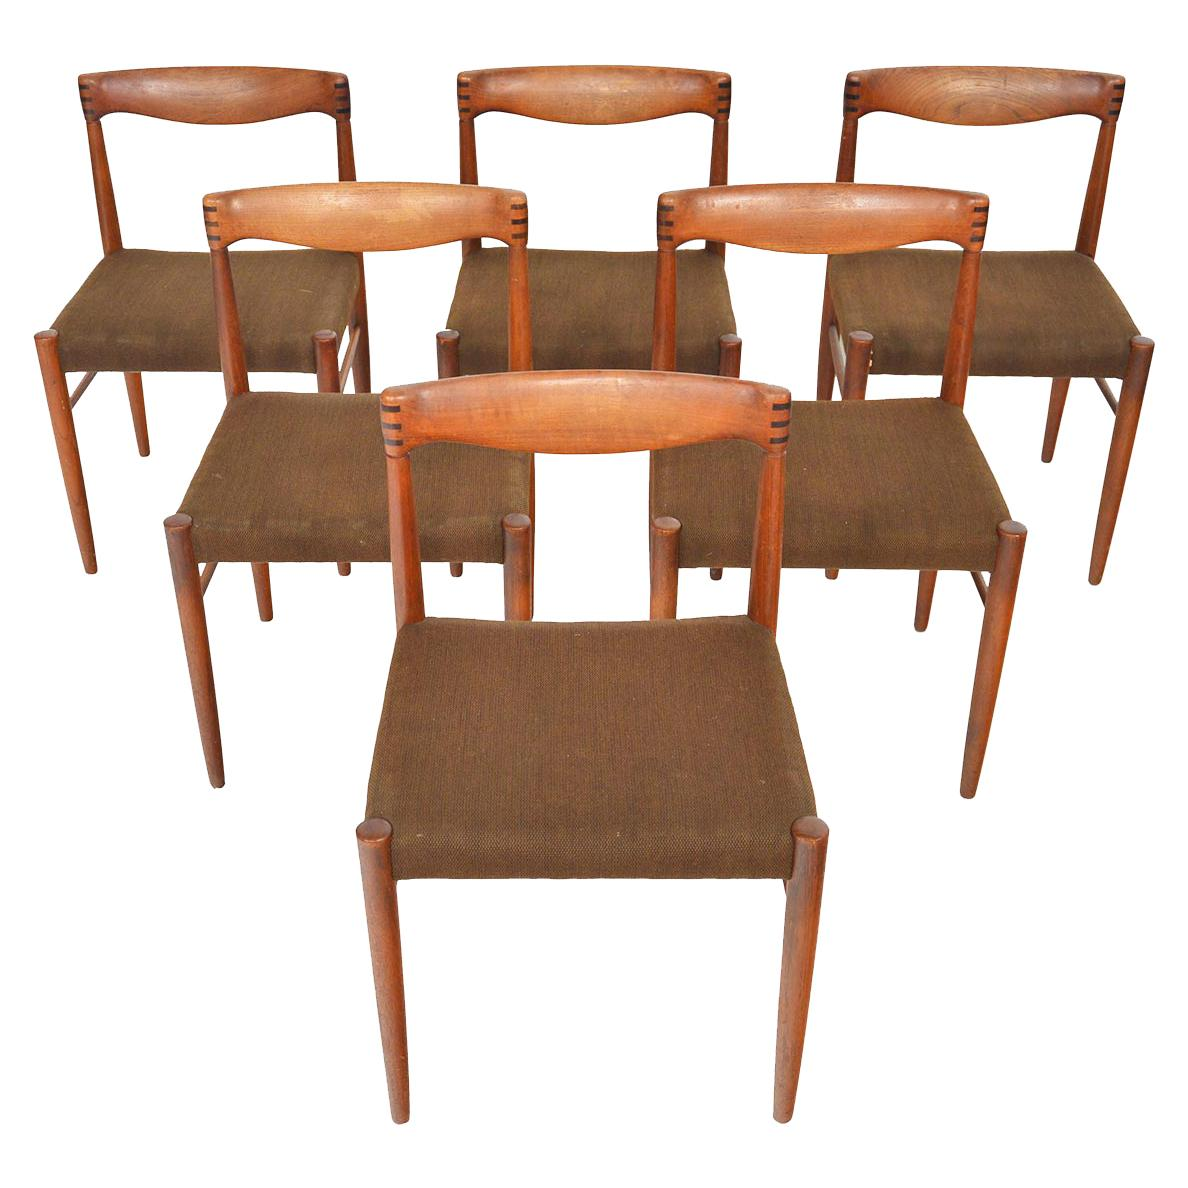 Set of Six H.W. Klein Danish Modern Teak and Rosewood Dining Chairs by Bramin